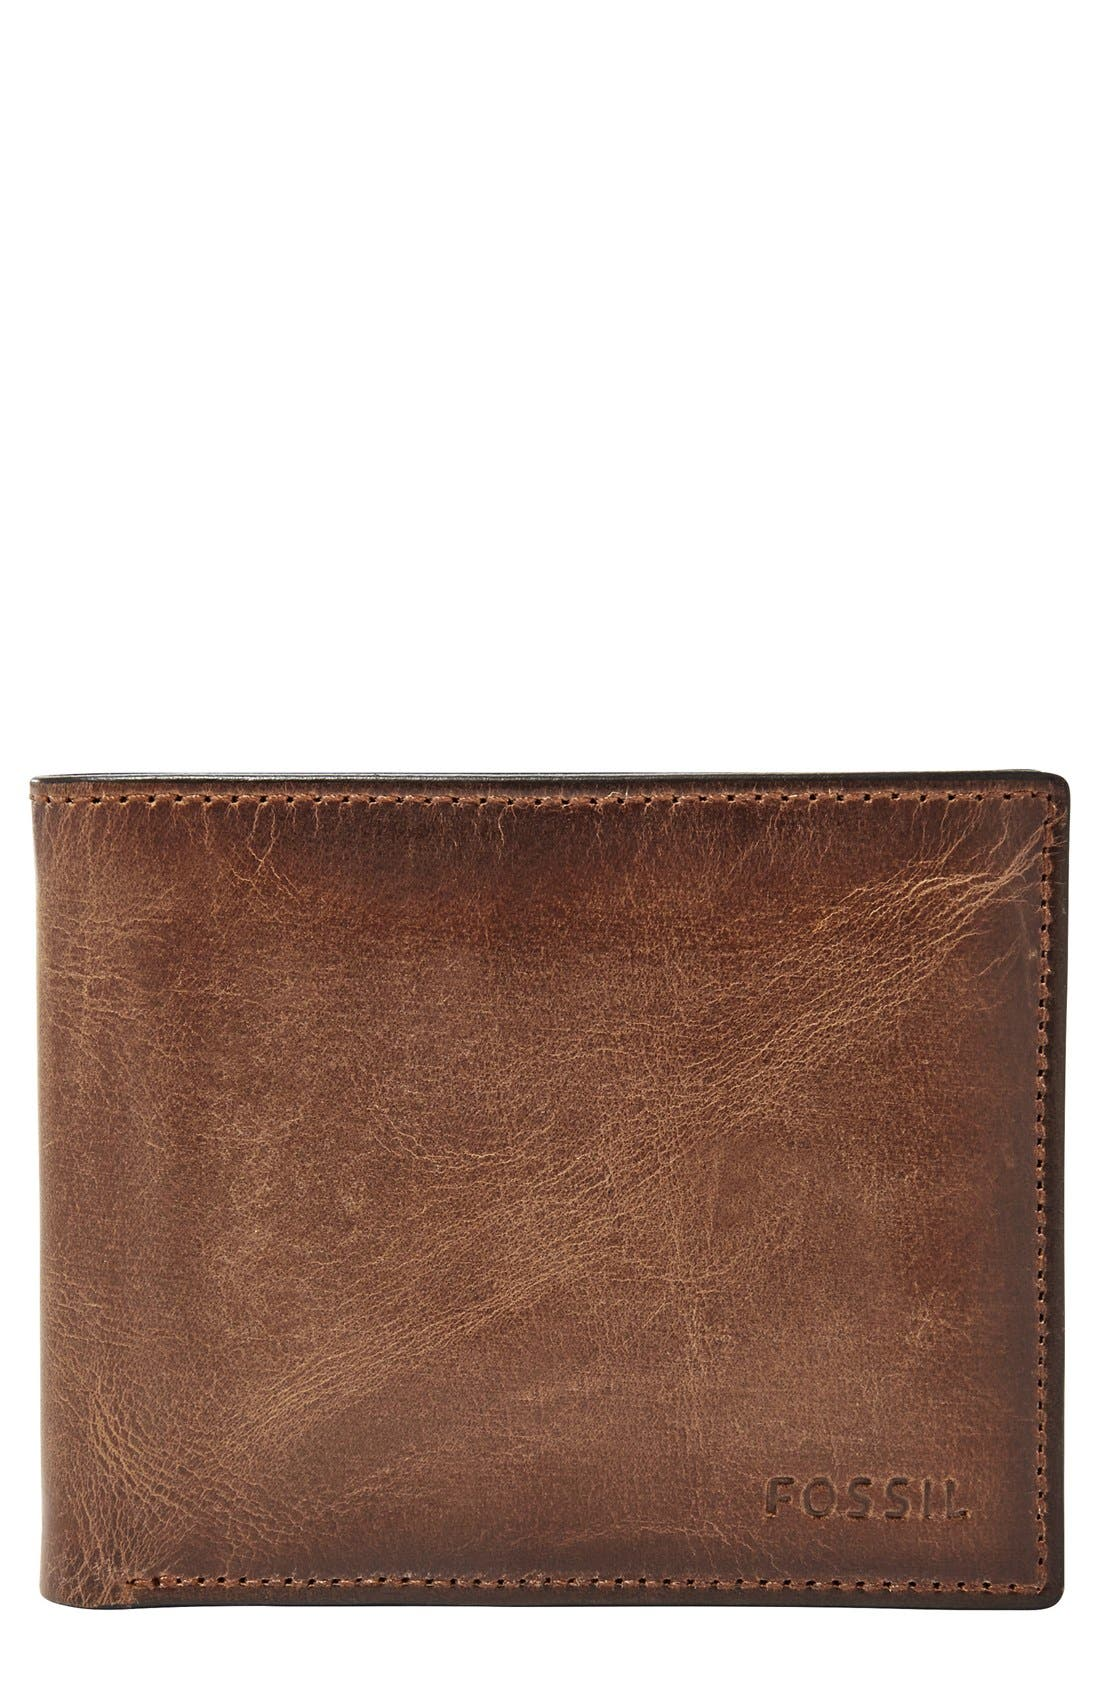 Alternate Image 1 Selected - Fossil 'Derrick' Leather Flip Trifold Wallet